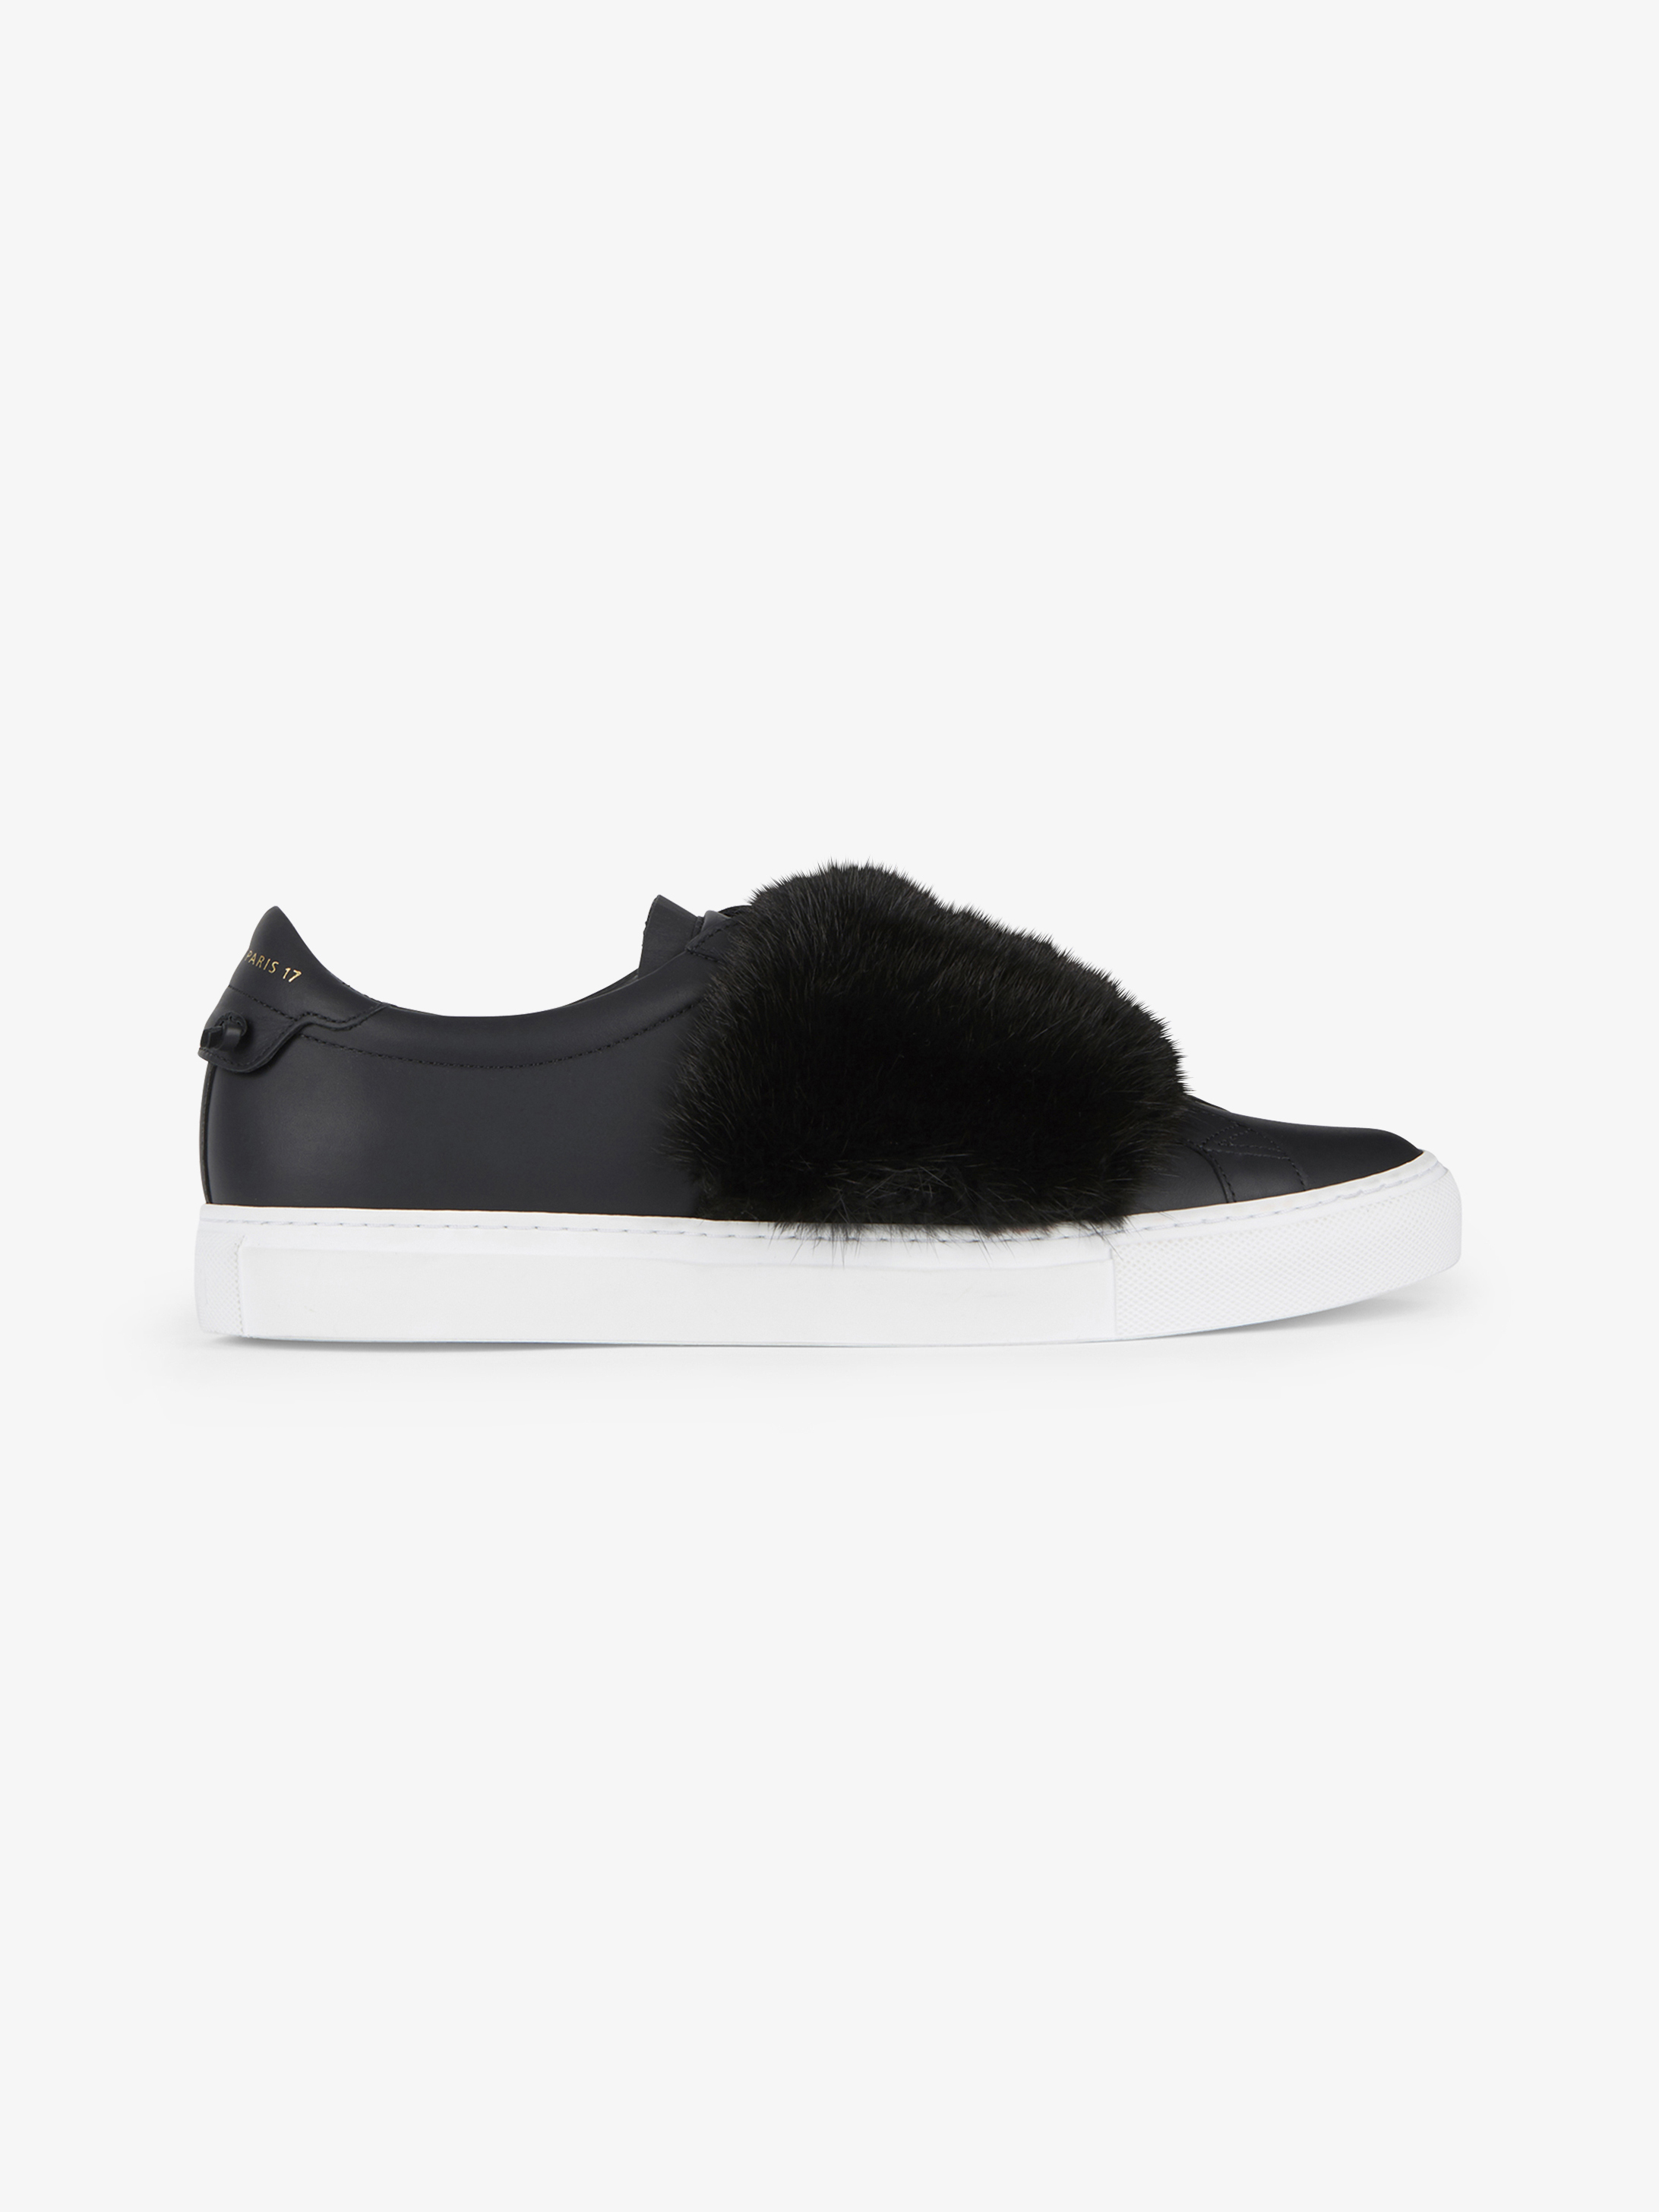 Sneakers in leather and mink